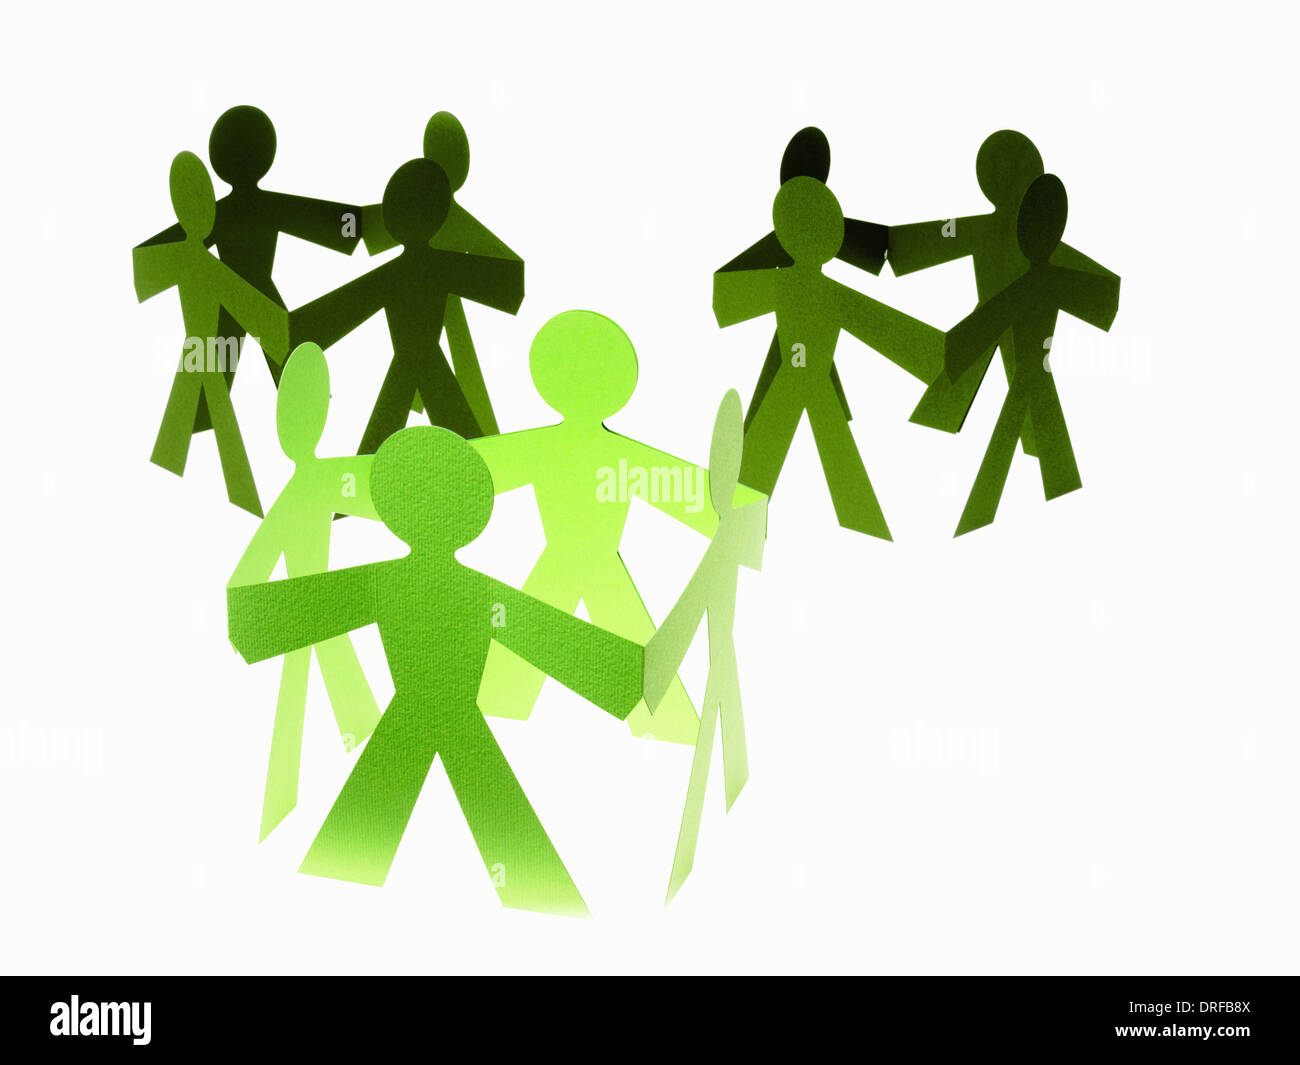 Papercuts paper cut out people with joined hands - Stock Image